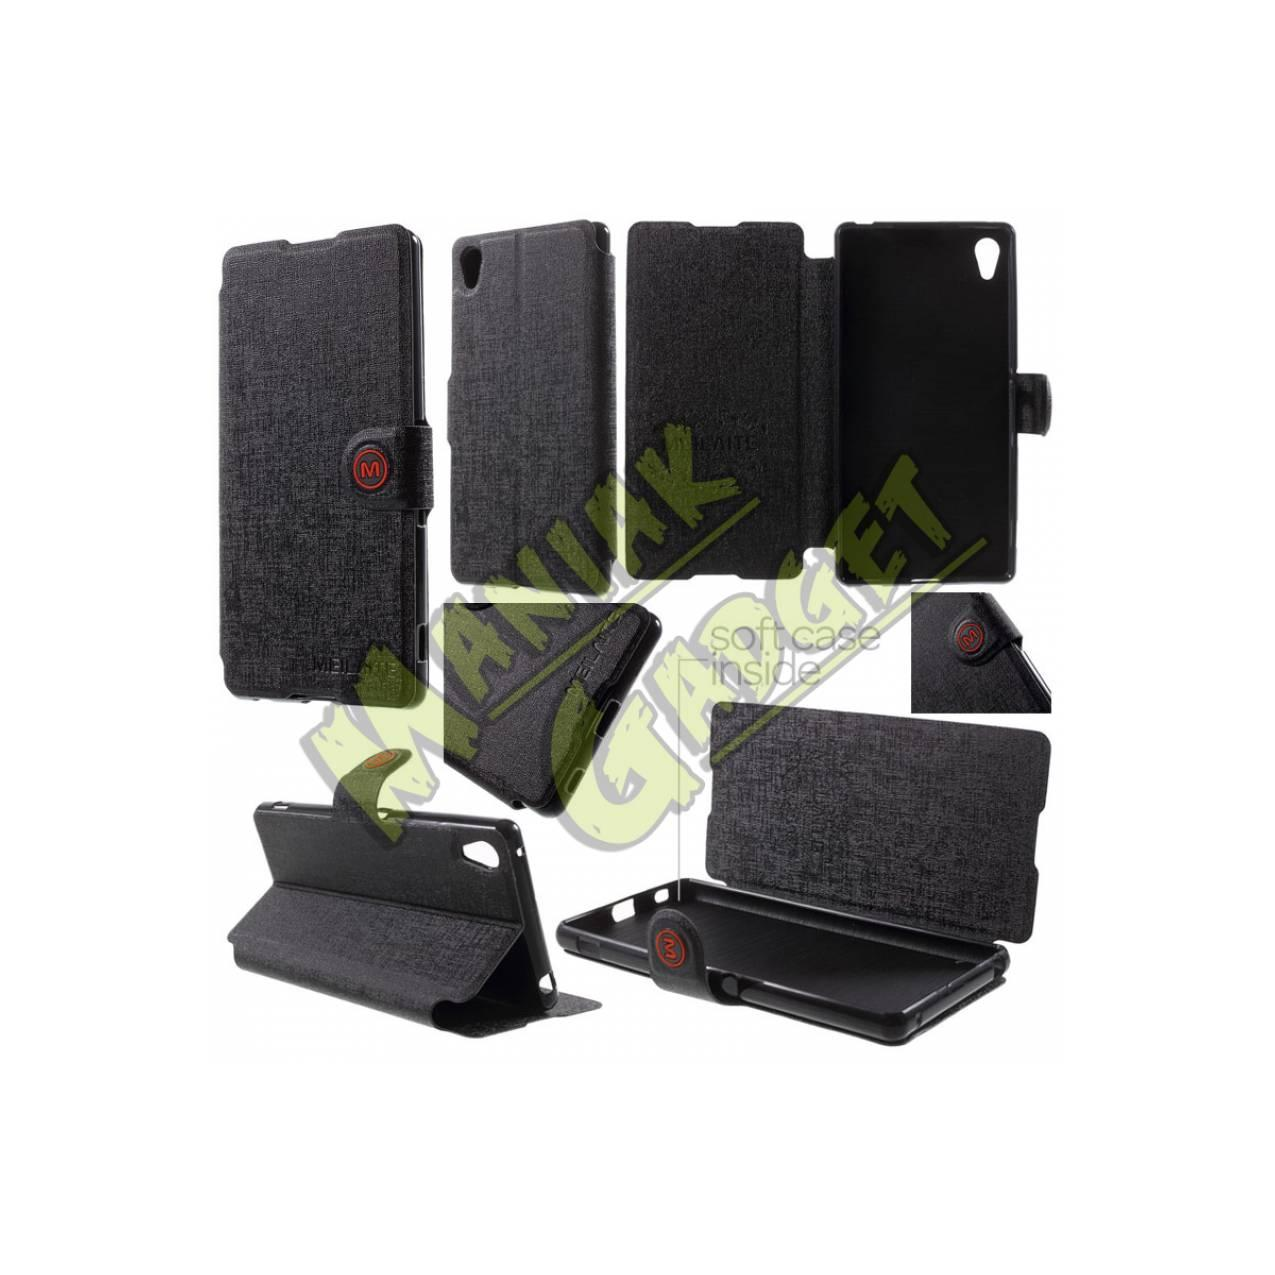 Jual Leather Case MLT Oracle Sony Xperia Z3+ Murah